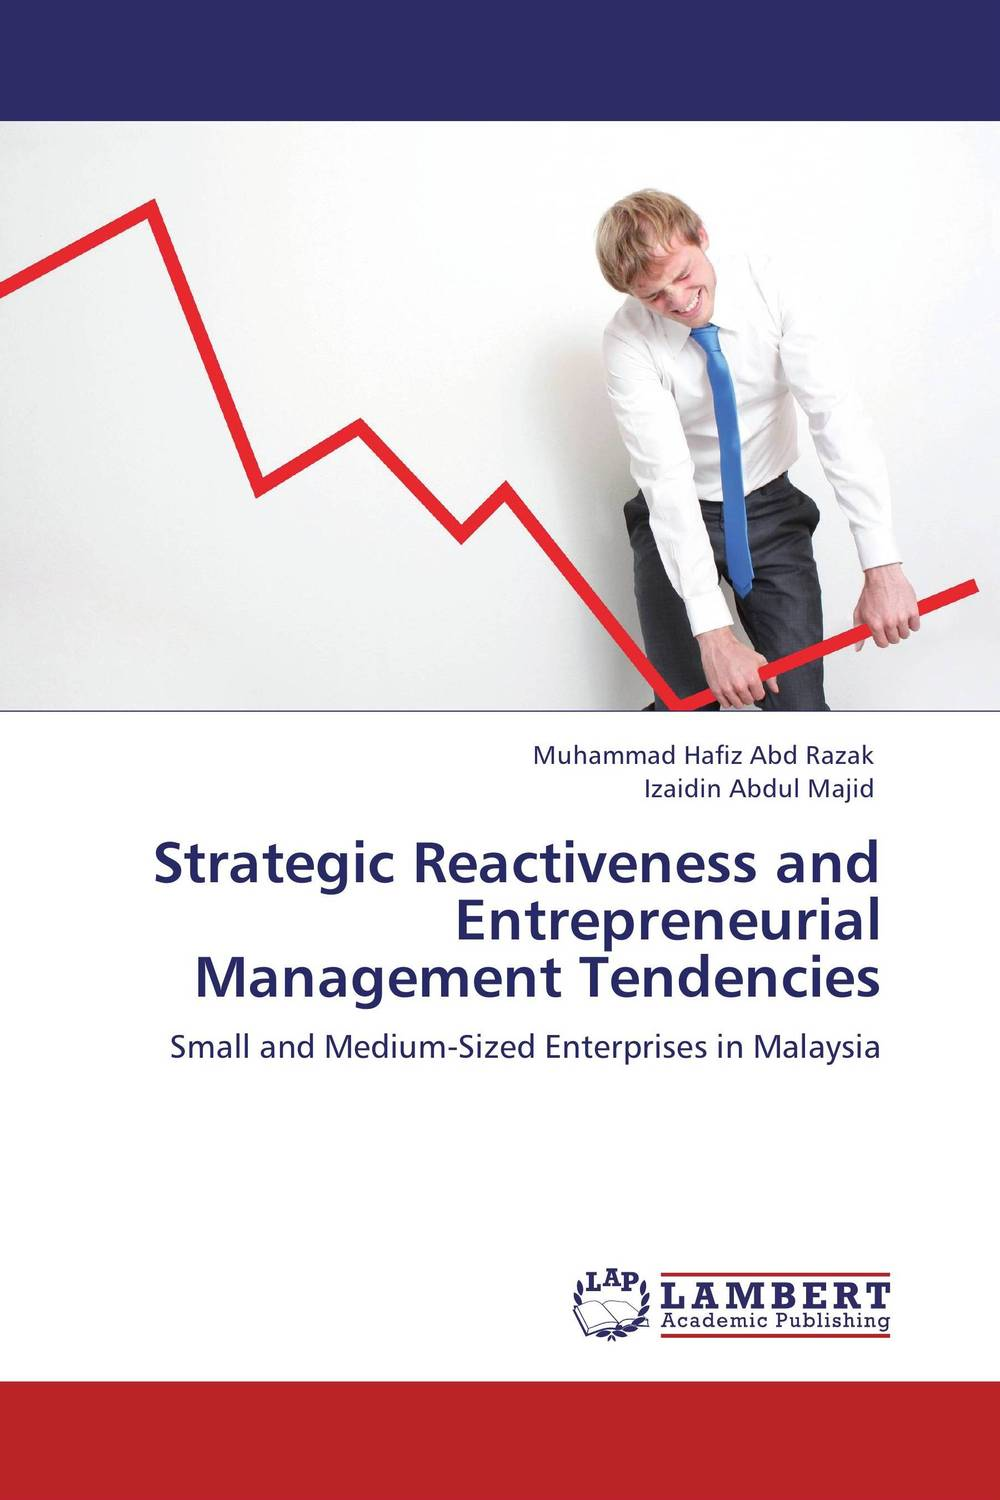 Strategic Reactiveness and Entrepreneurial Management Tendencies